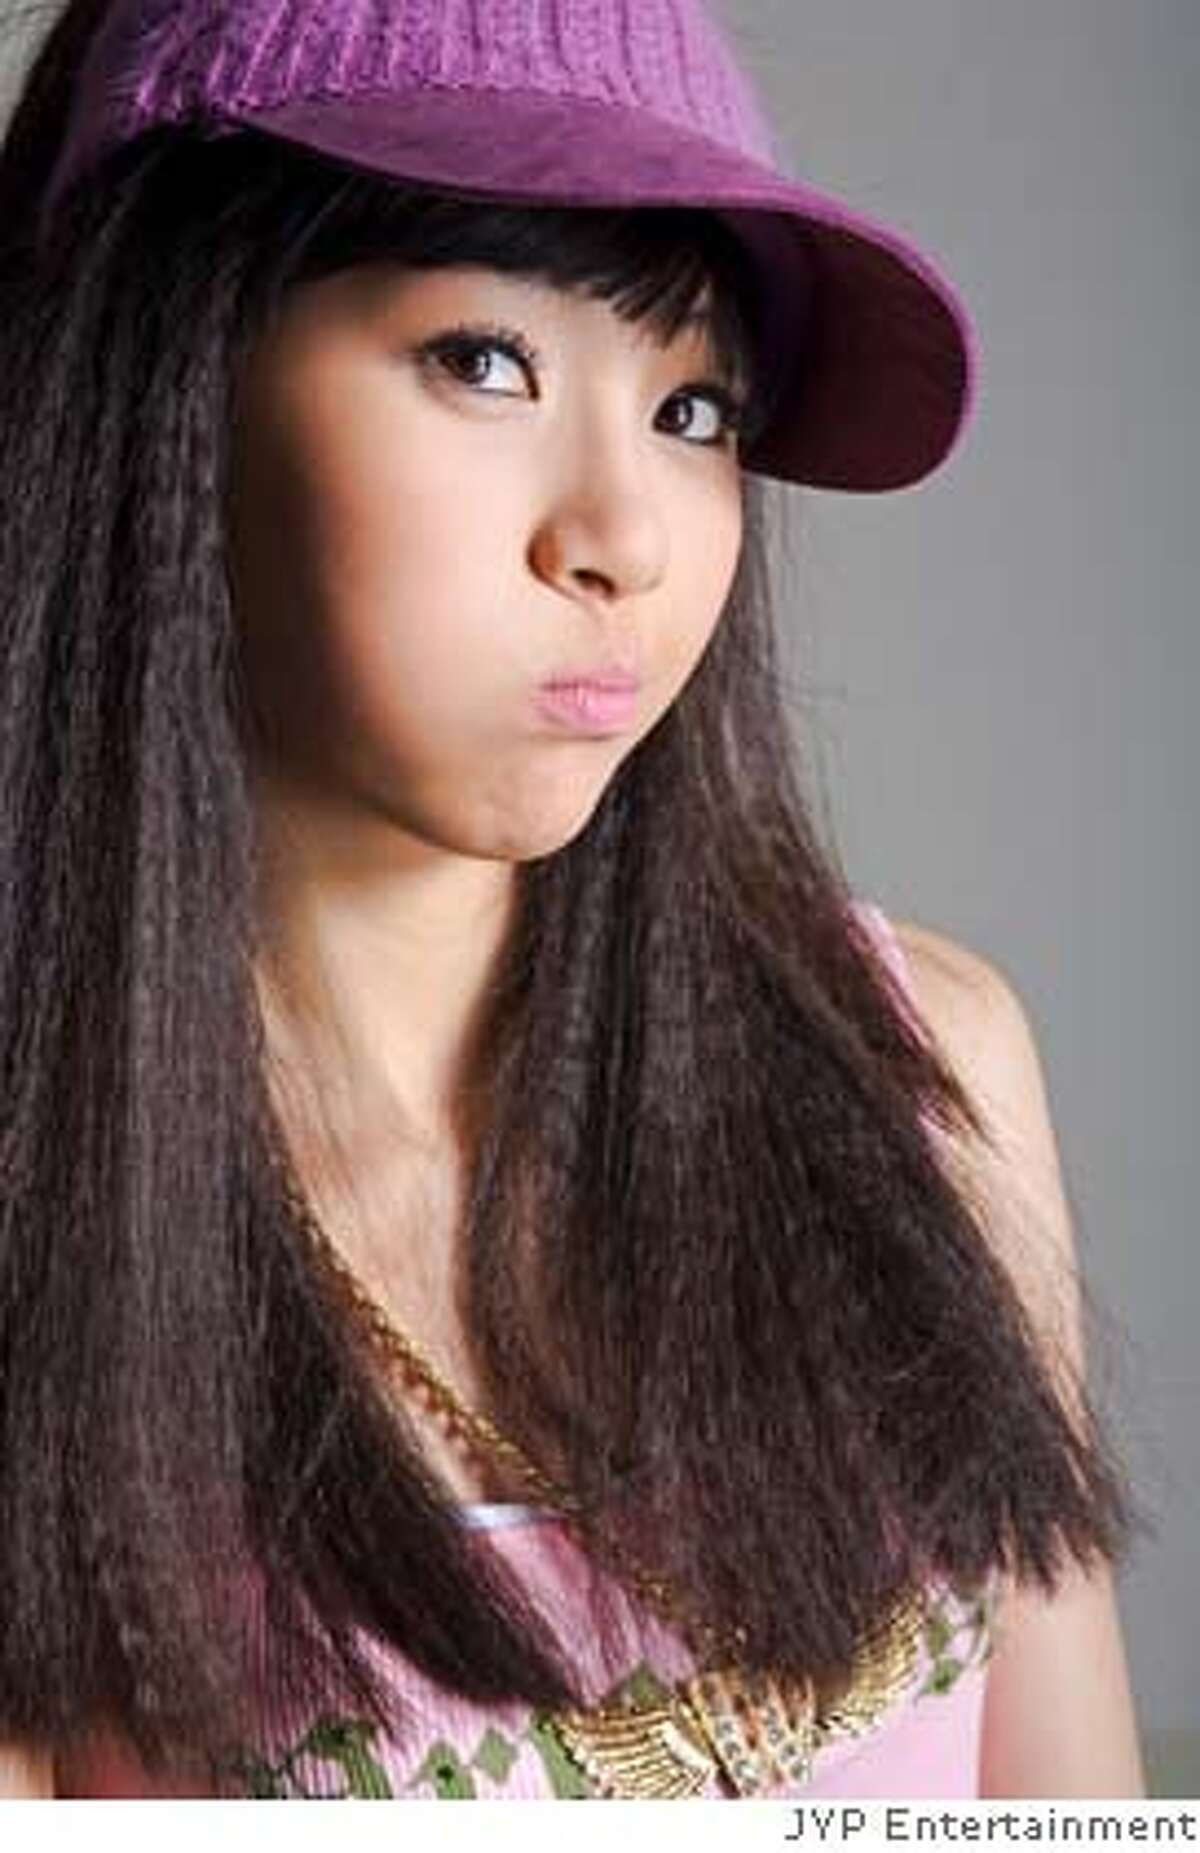 The Strange One: 15-year-old Sun Mi is lovingly called the